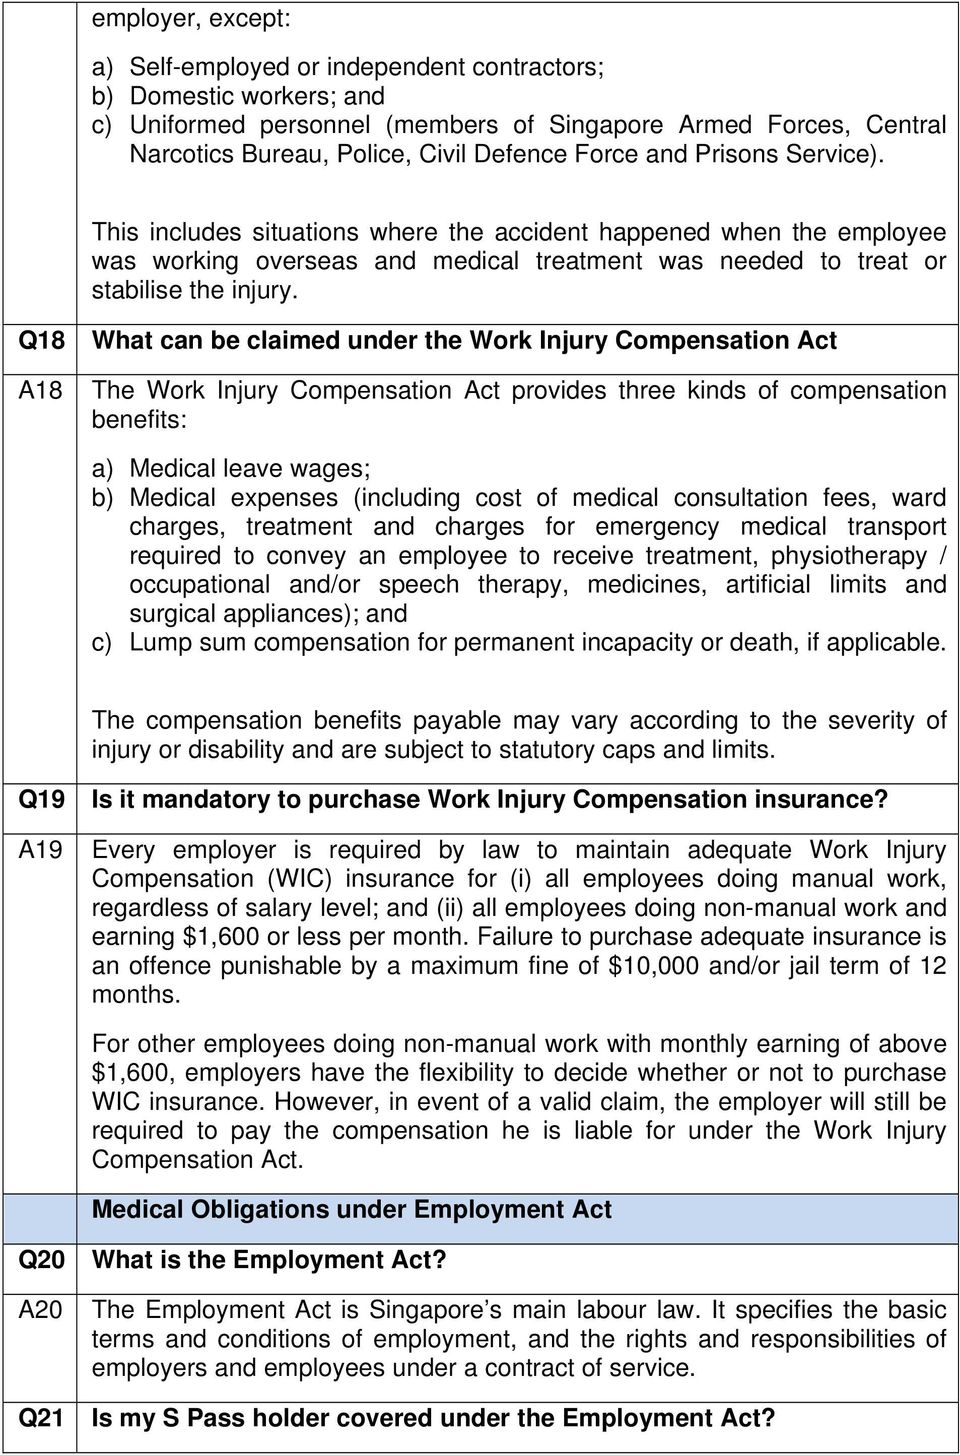 Q18 What can be claimed under the Work Injury Compensation Act A18 The Work Injury Compensation Act provides three kinds of compensation benefits: a) Medical leave wages; b) Medical expenses